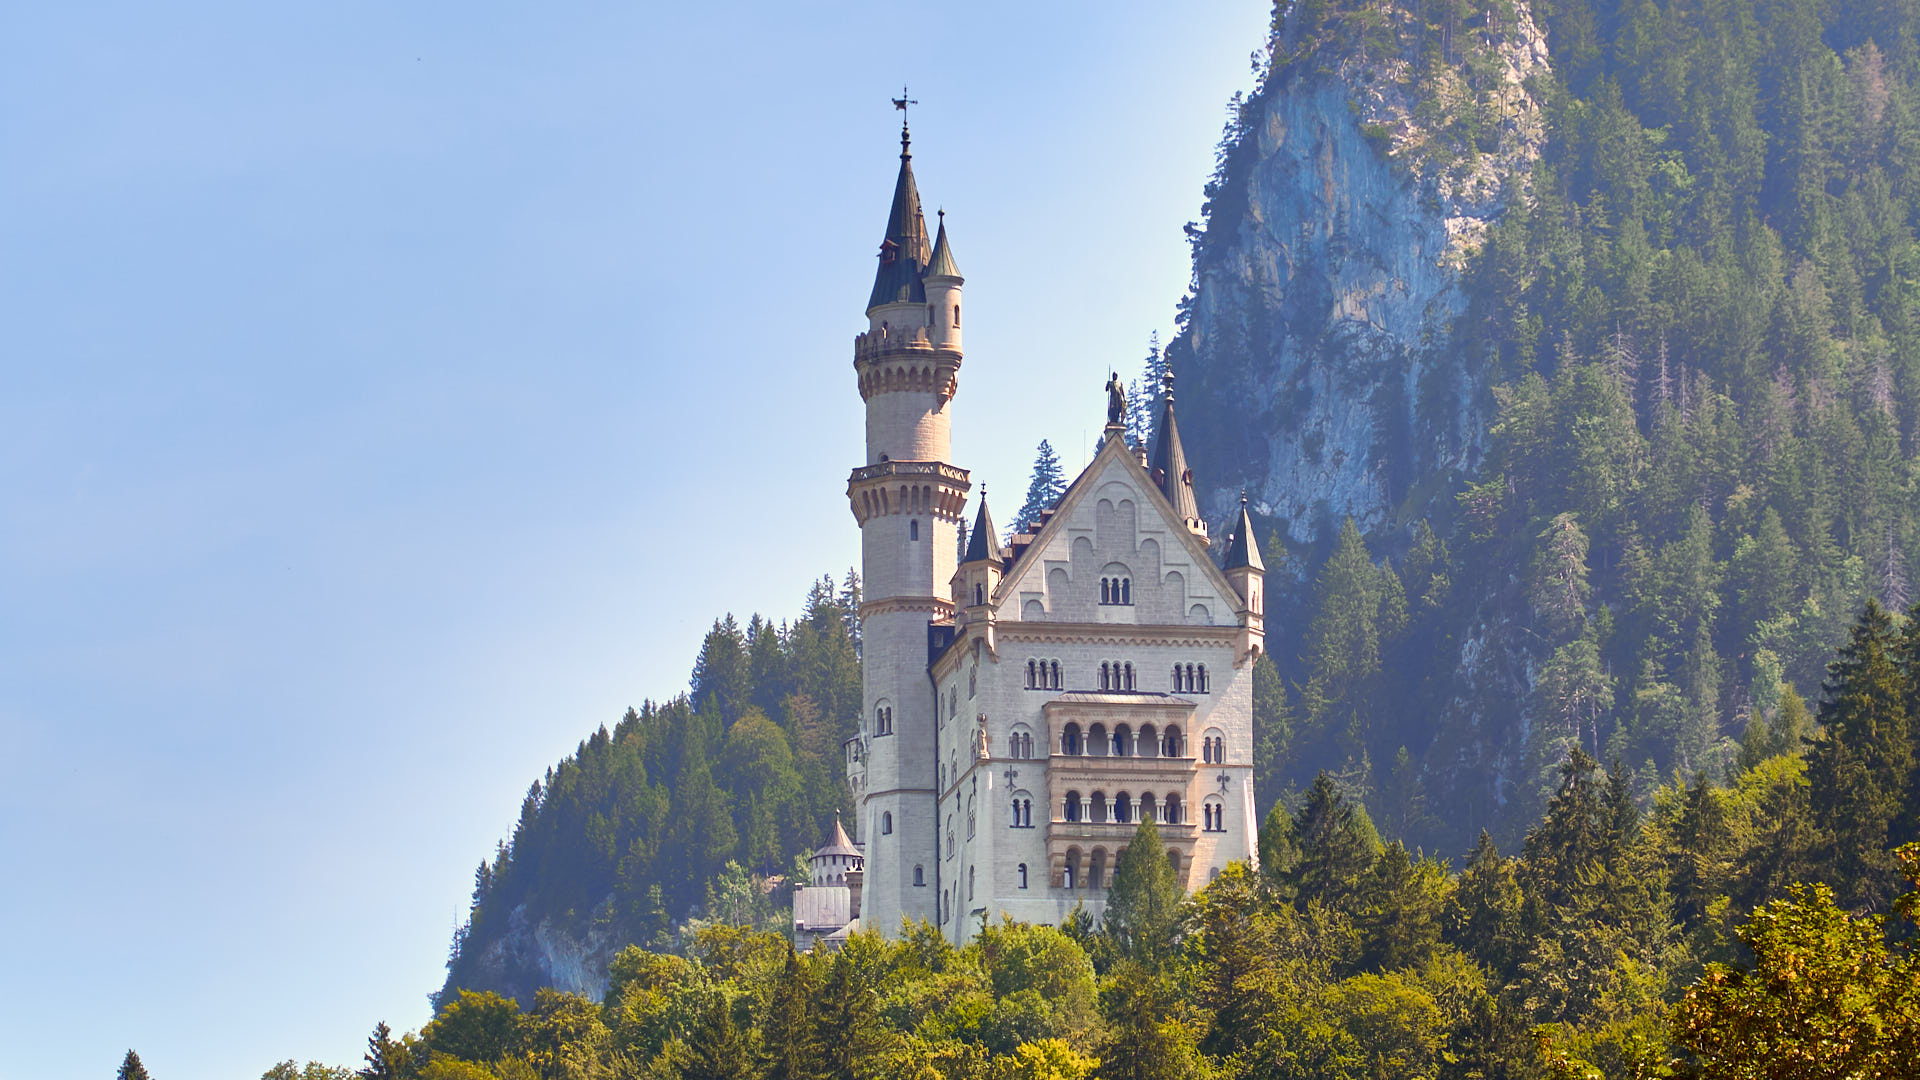 View of Newschwanstein Castle from far away